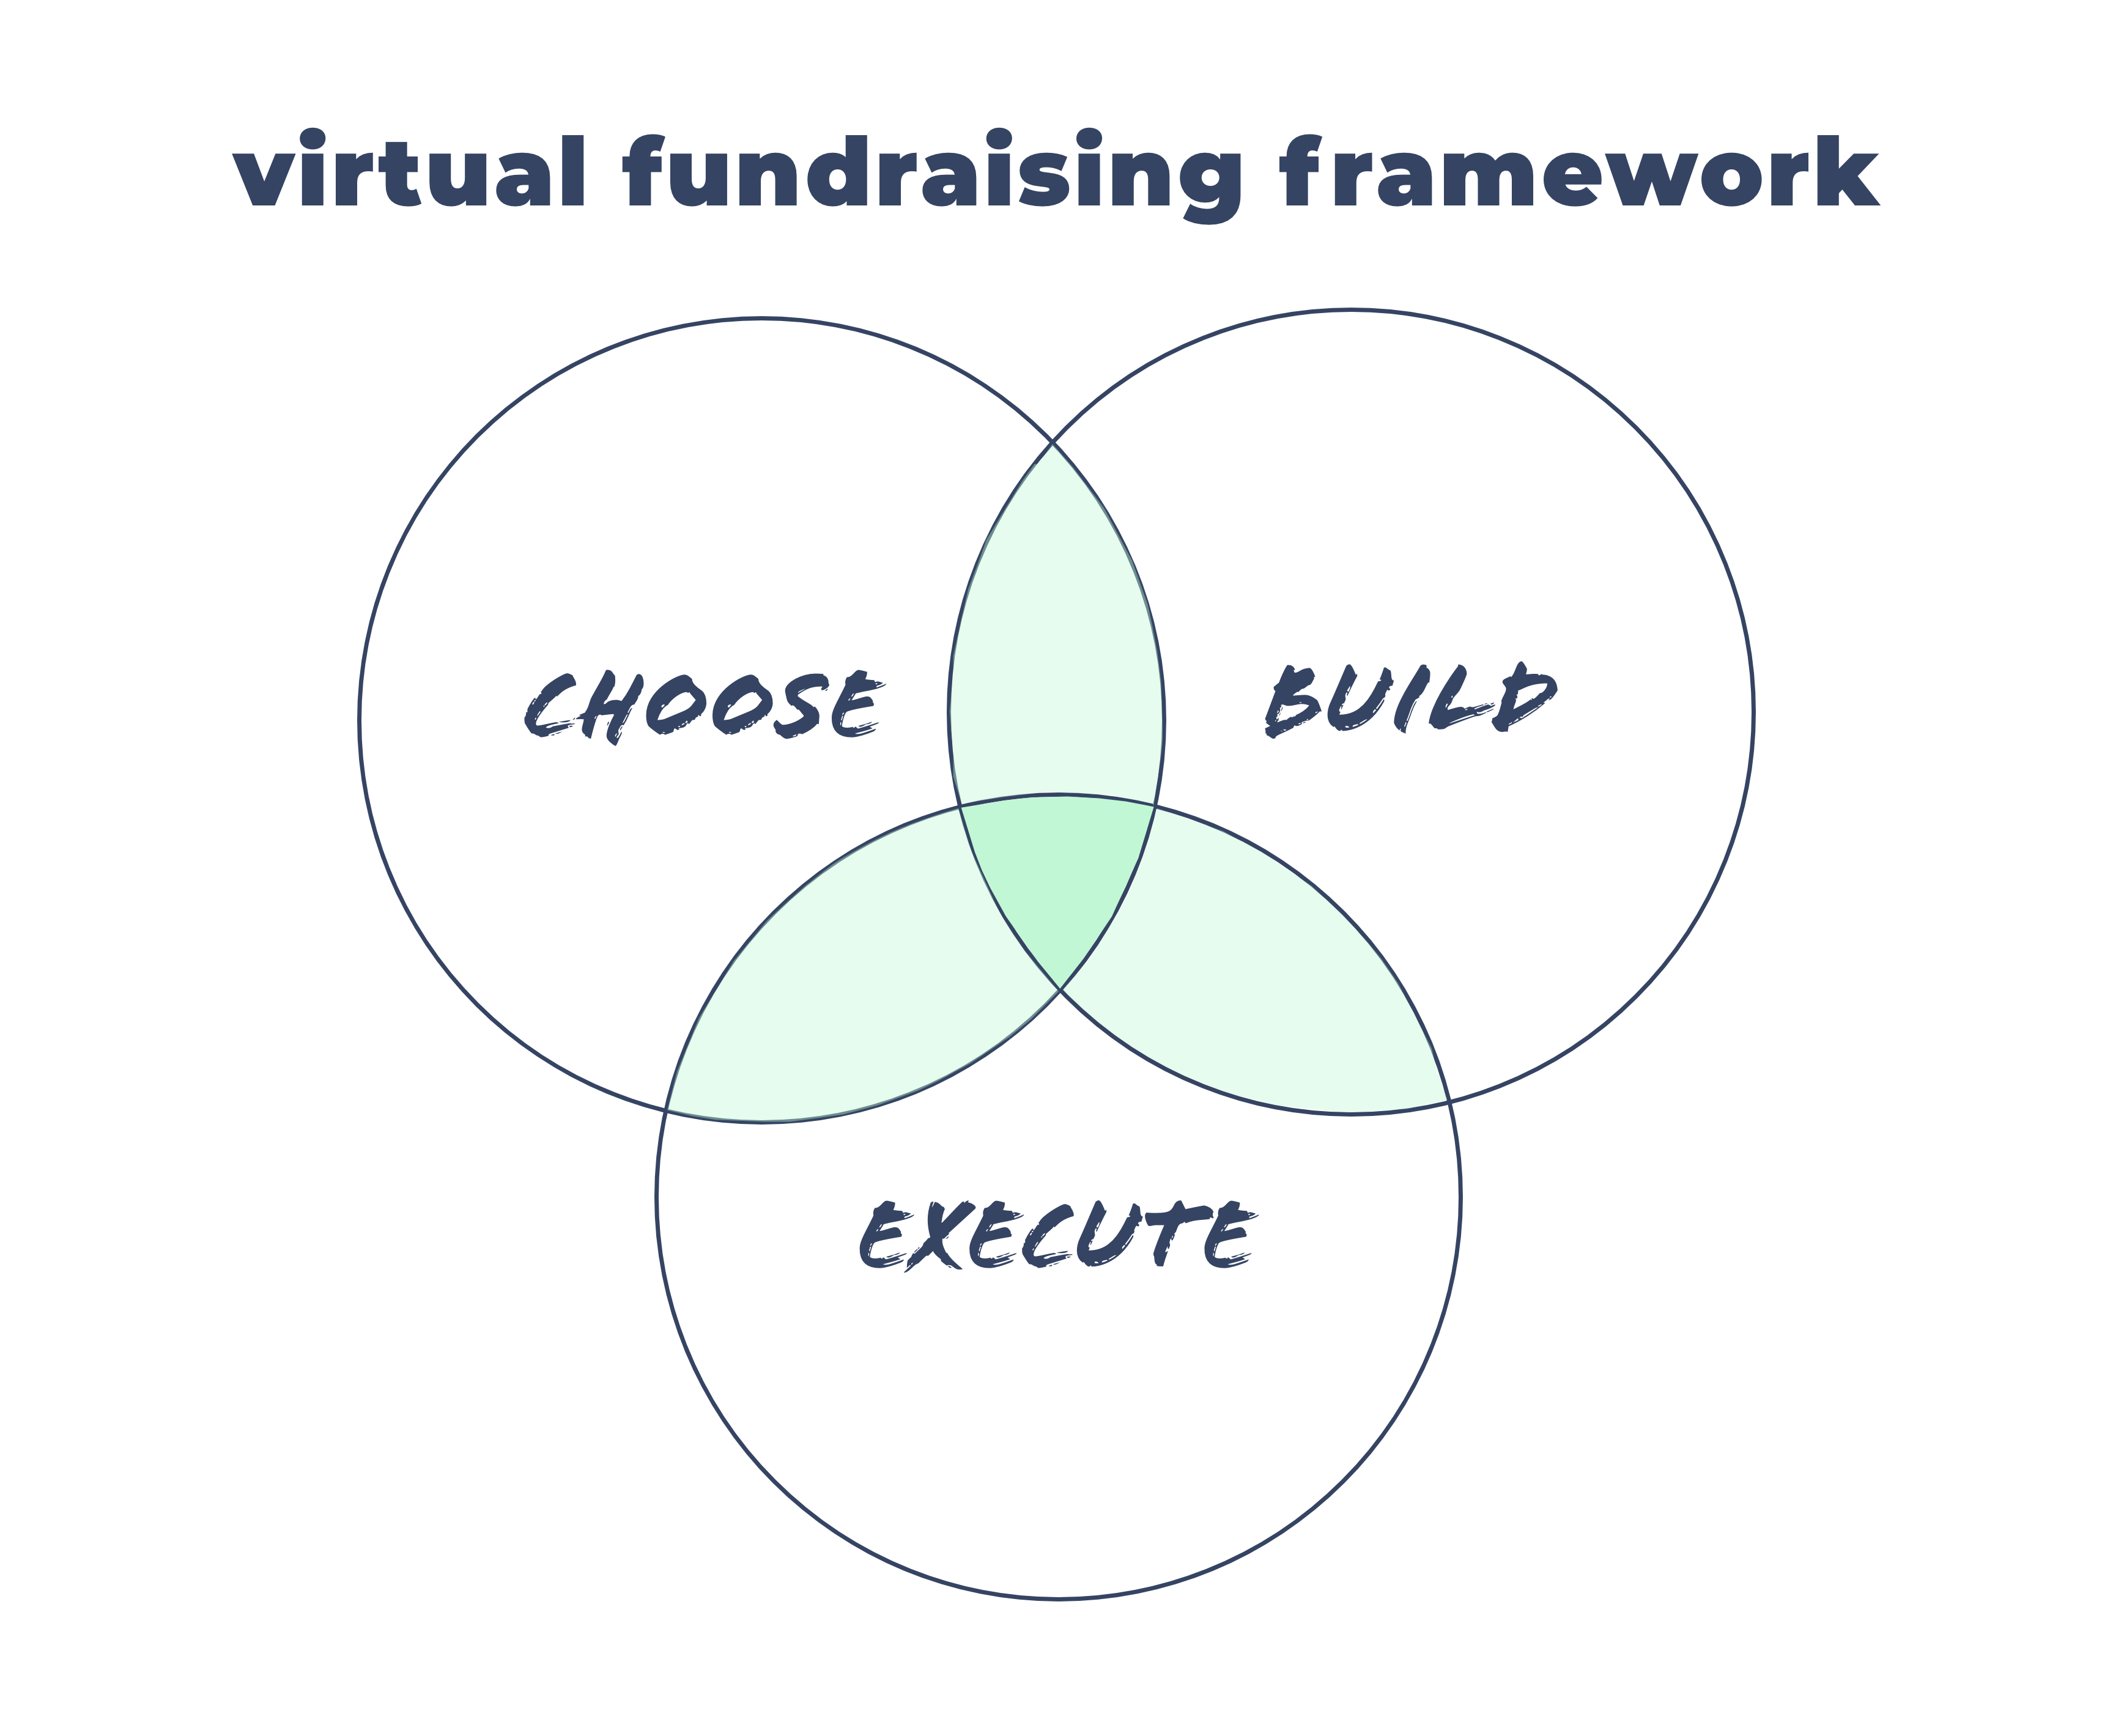 The Virtual Fundraiser Framework - Choose, Build, Execute